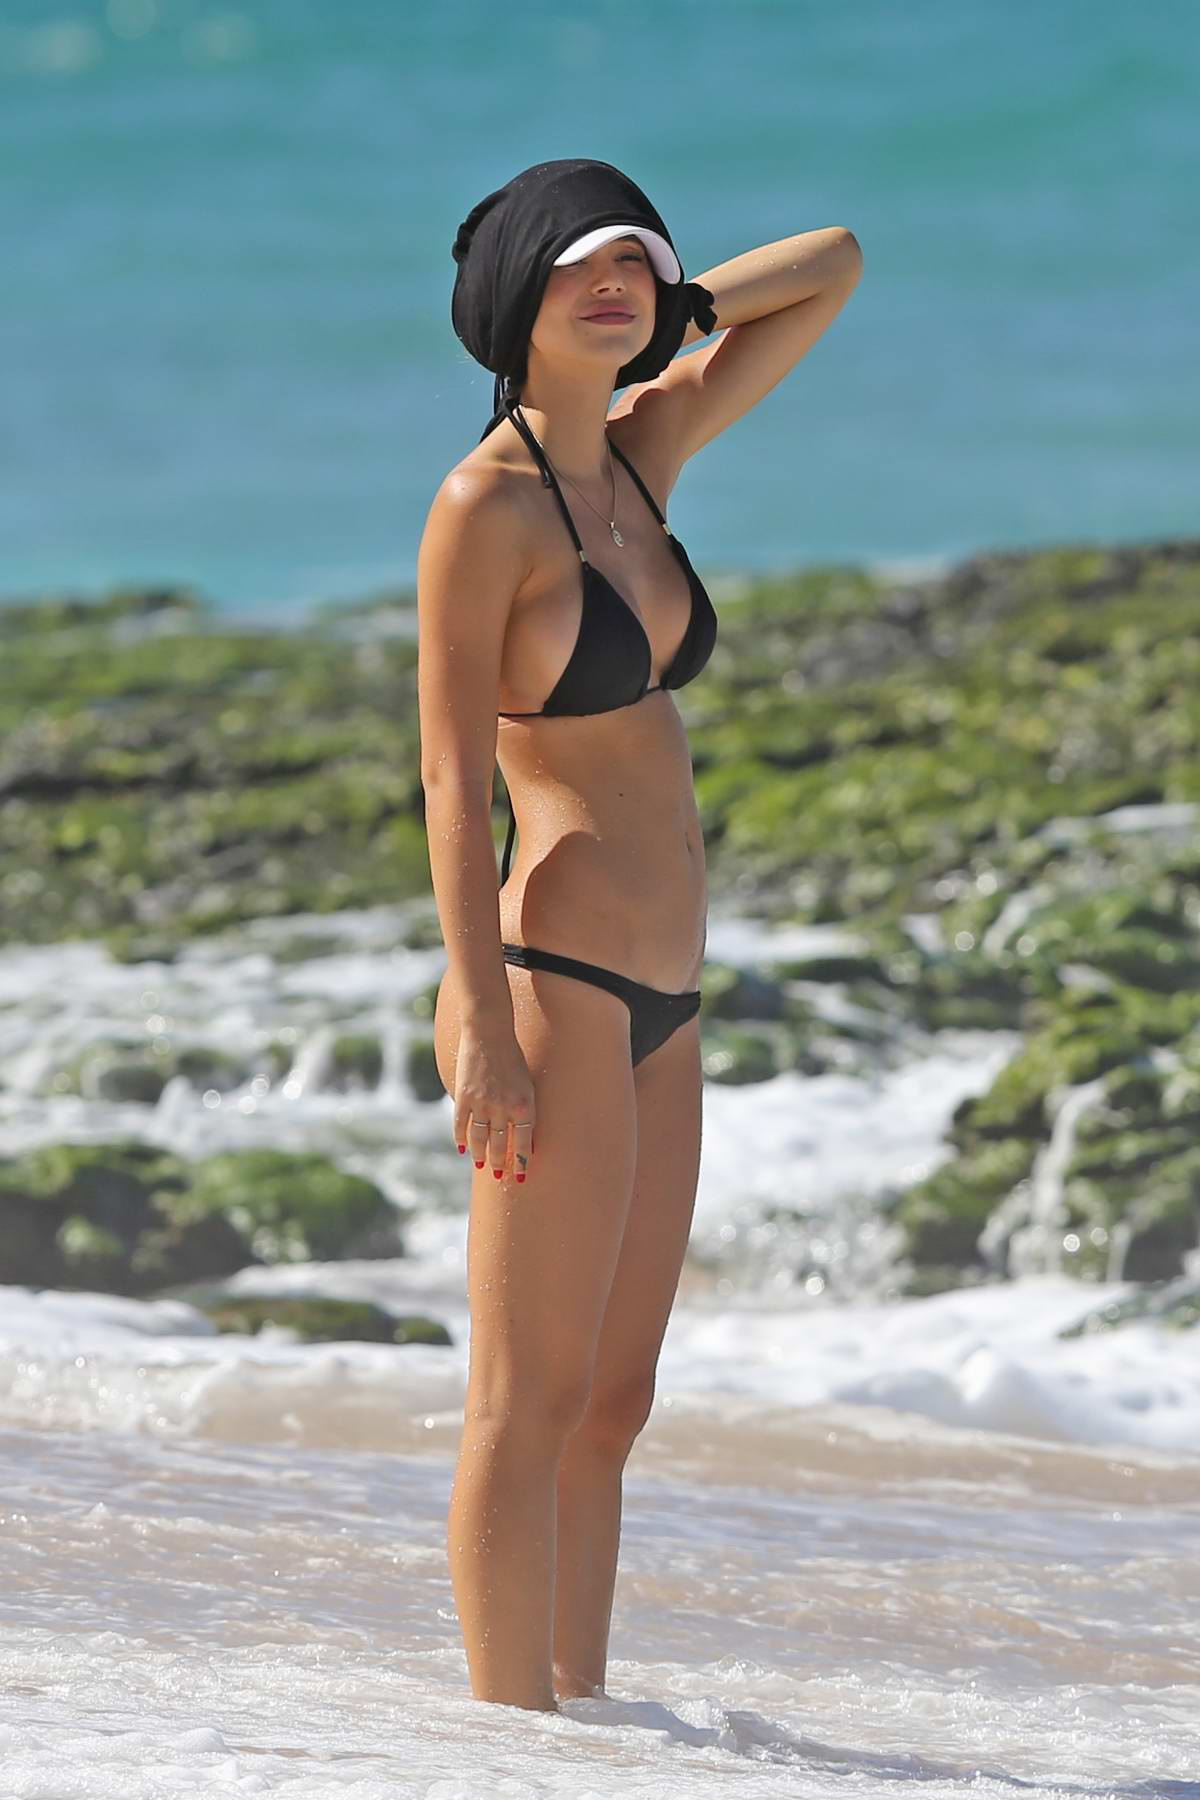 Alexis Ren Wears A Black Bikini While Enjoying The Beach